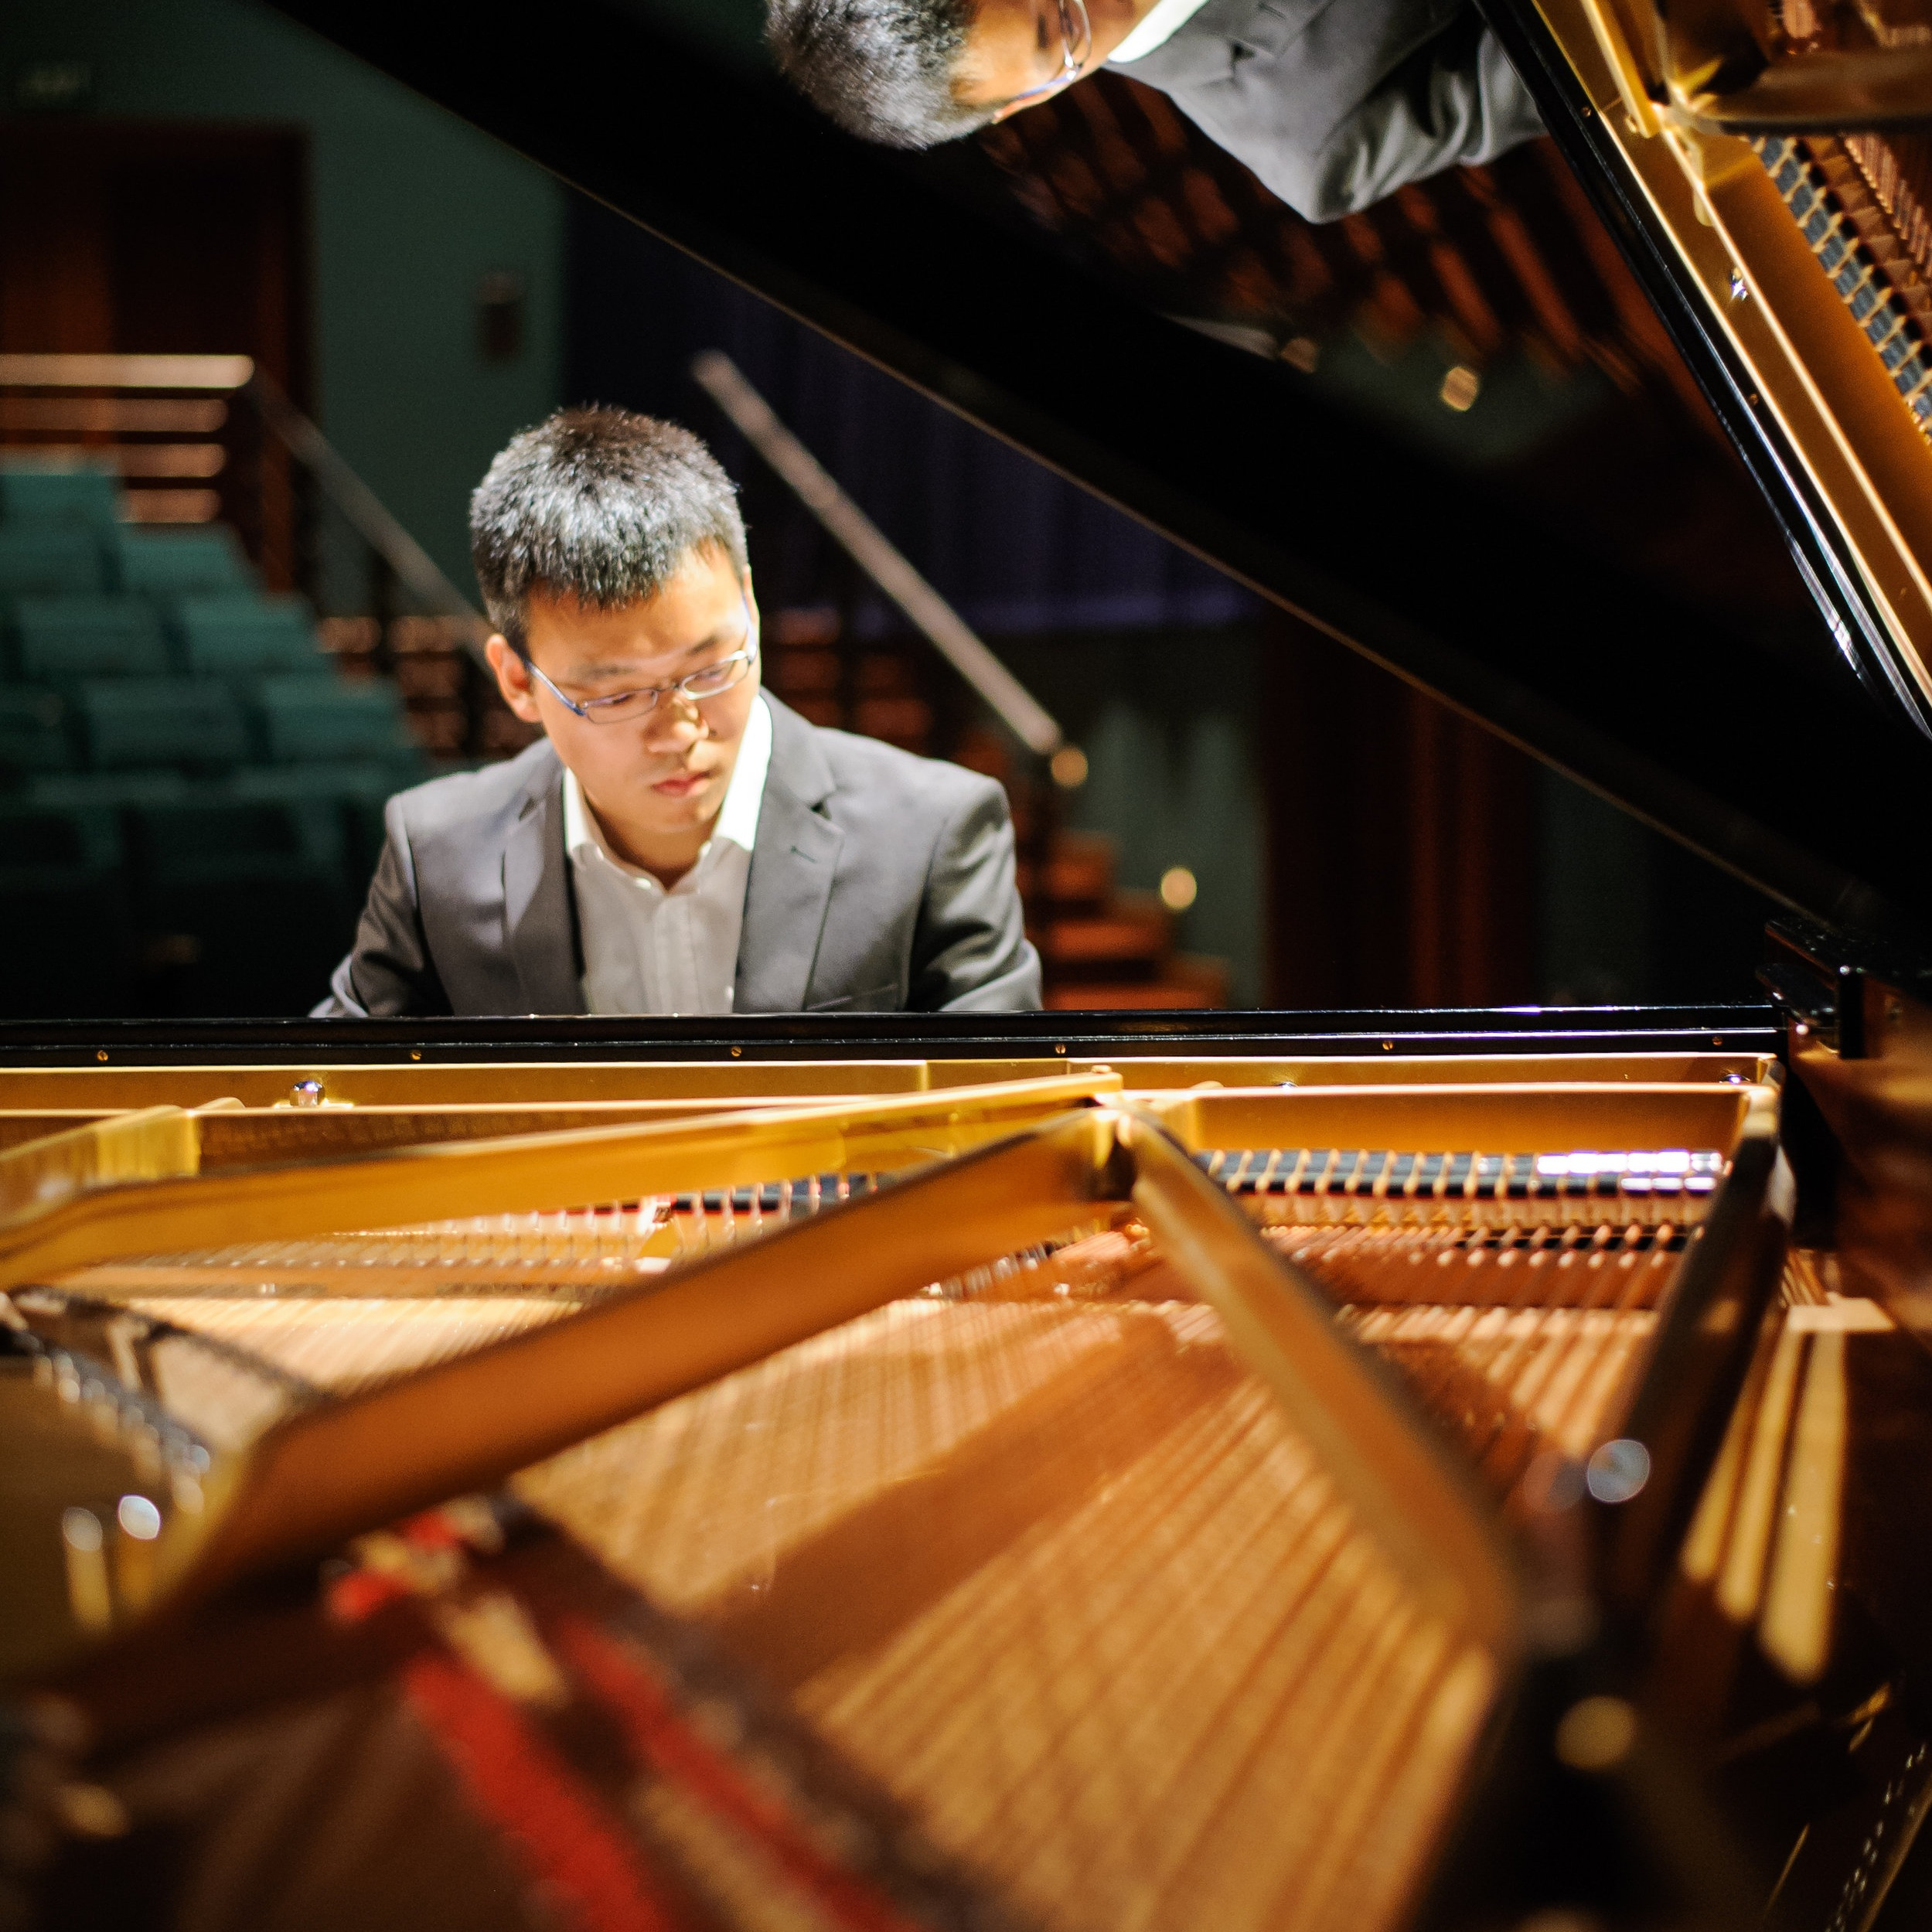 PCMF AFFILIATE EVENT 02 - Piano recital by Thomas Ang